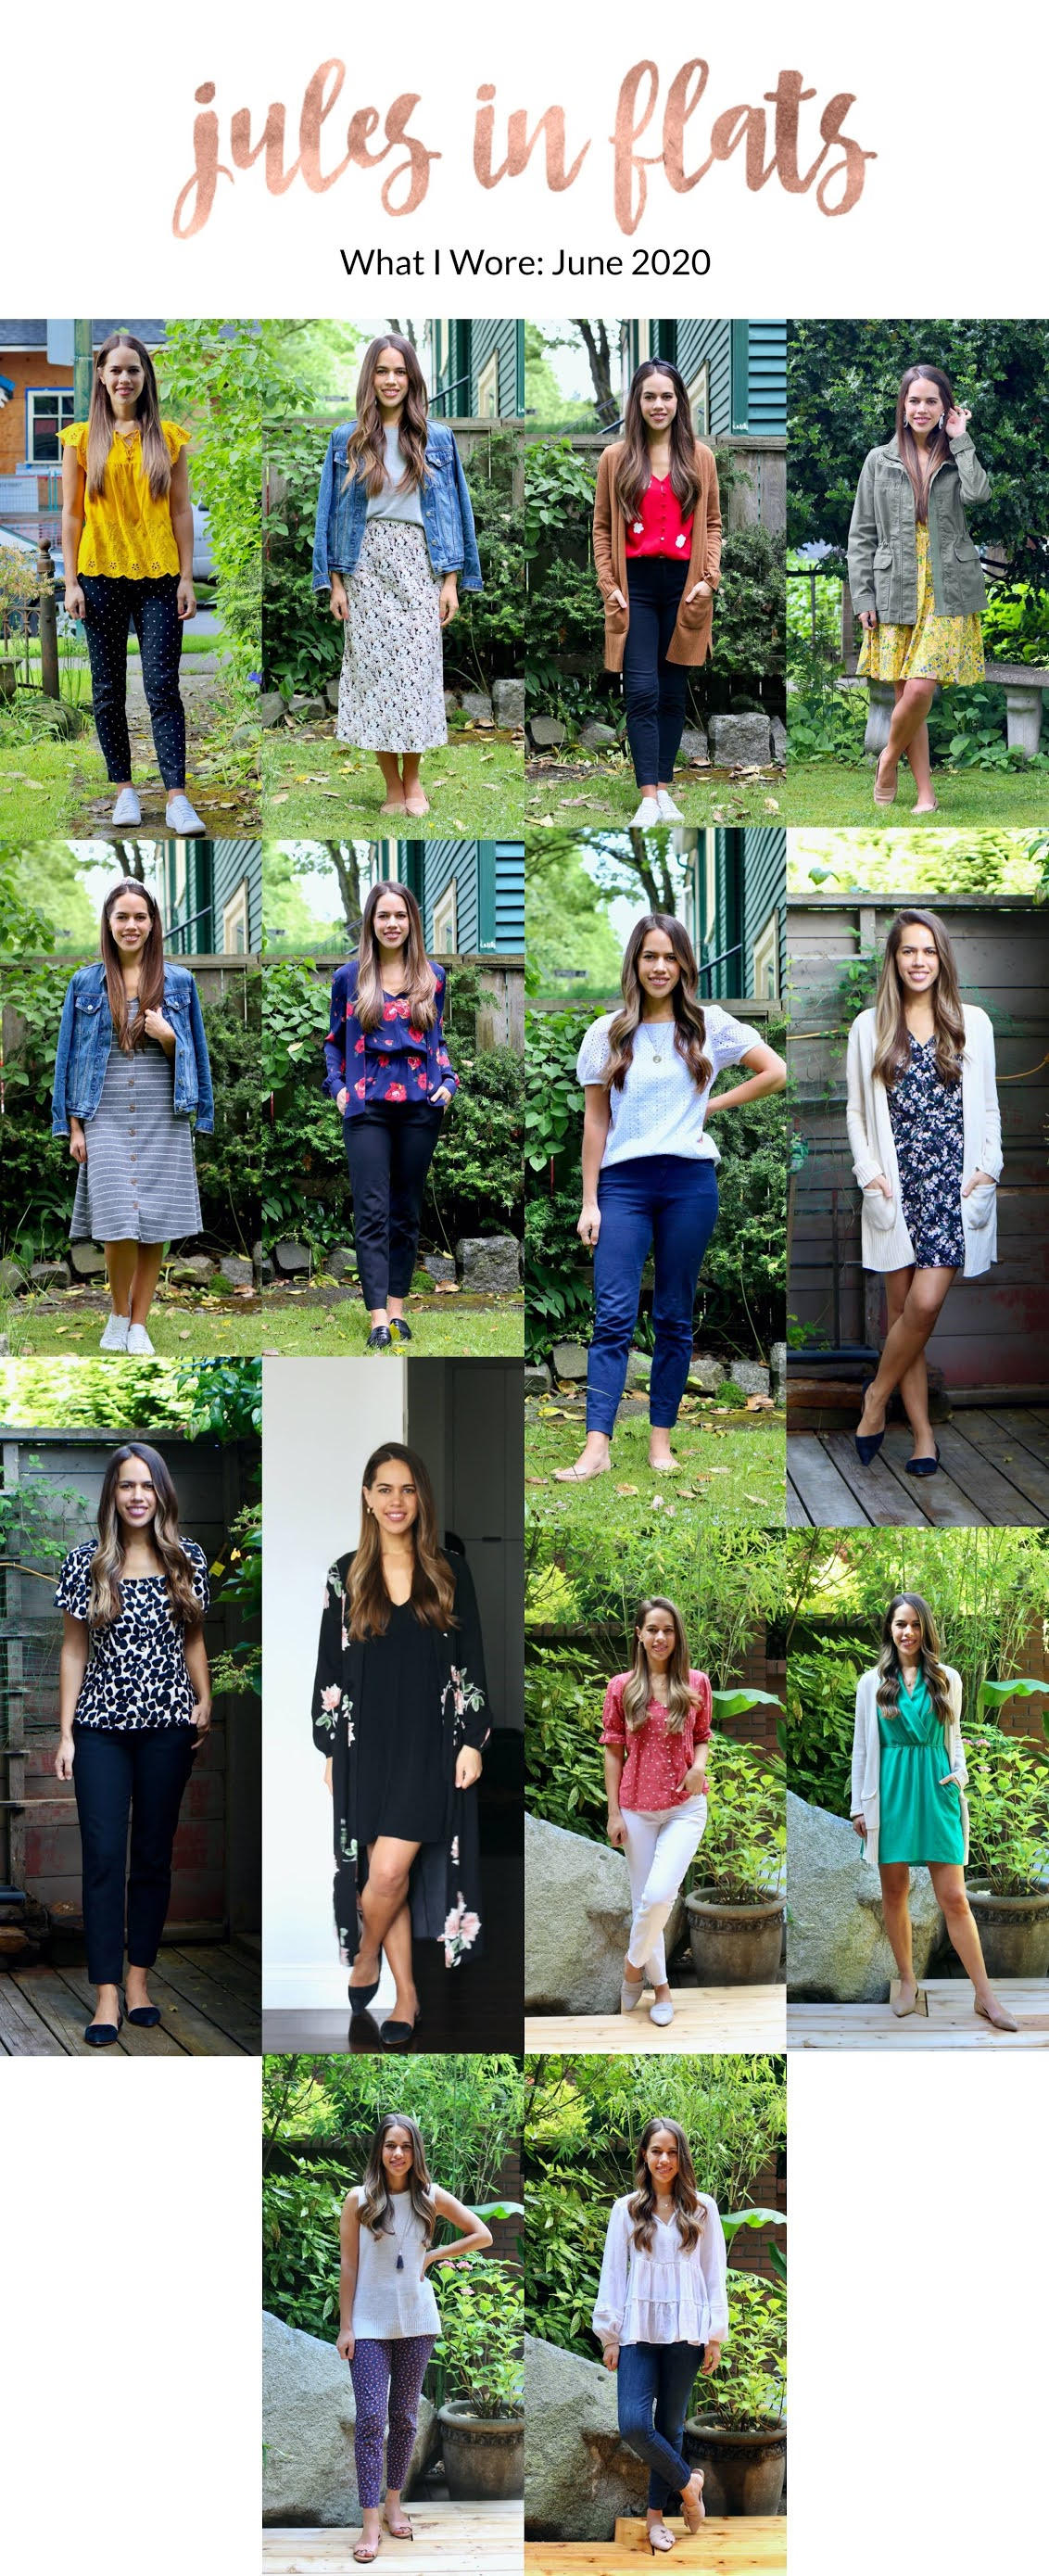 Jules in Flats - Workwear Outfit Ideas for June